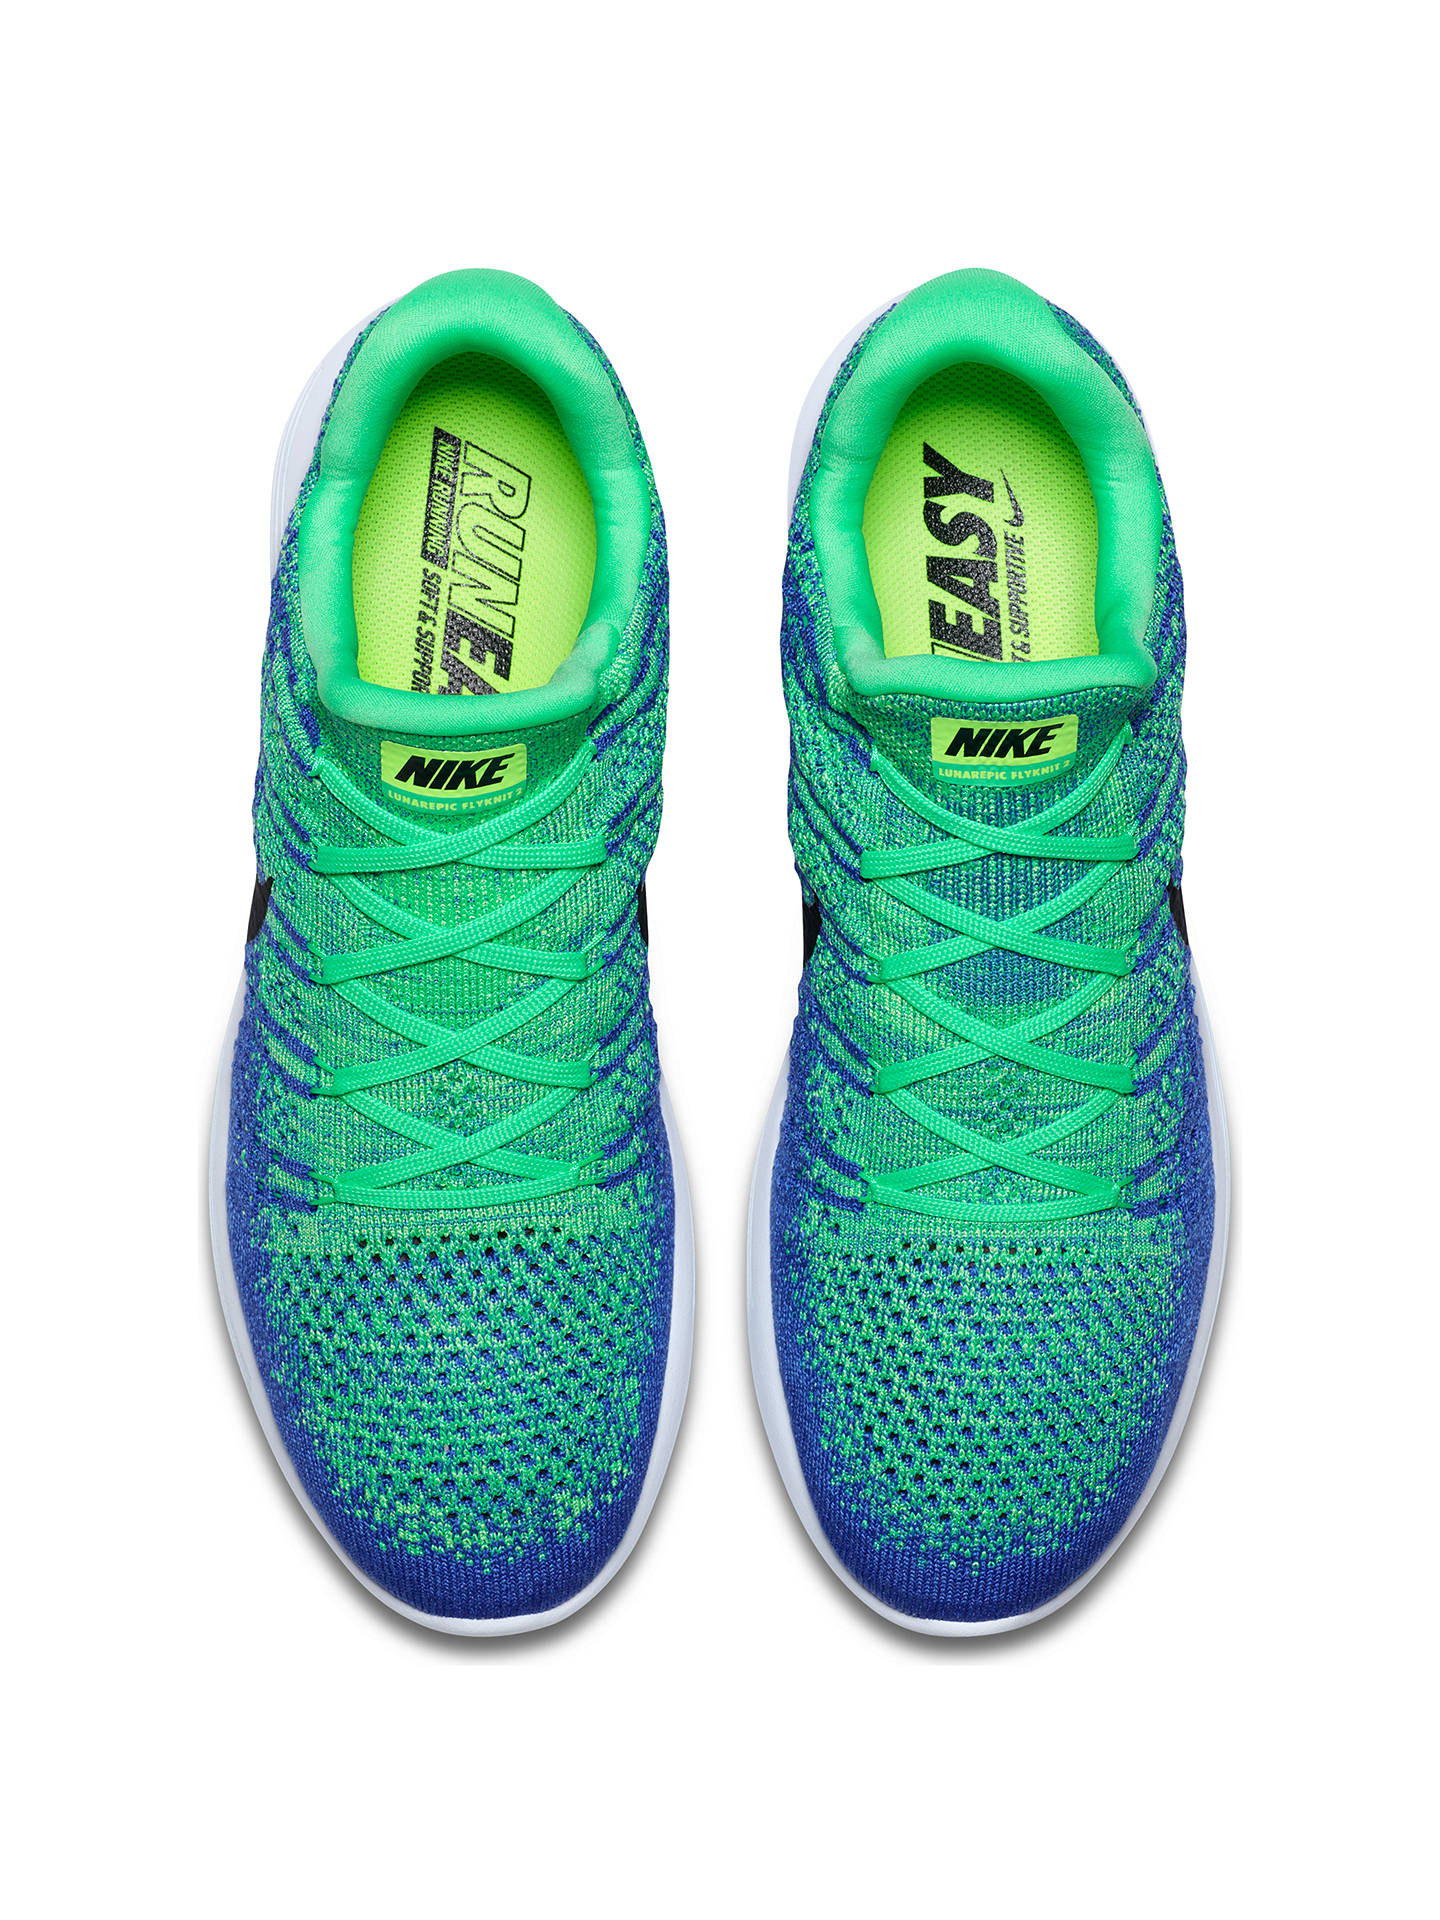 15436fd976f1a Nike LunarEpic Low Flyknit 2 Men s Running Shoes at John Lewis ...